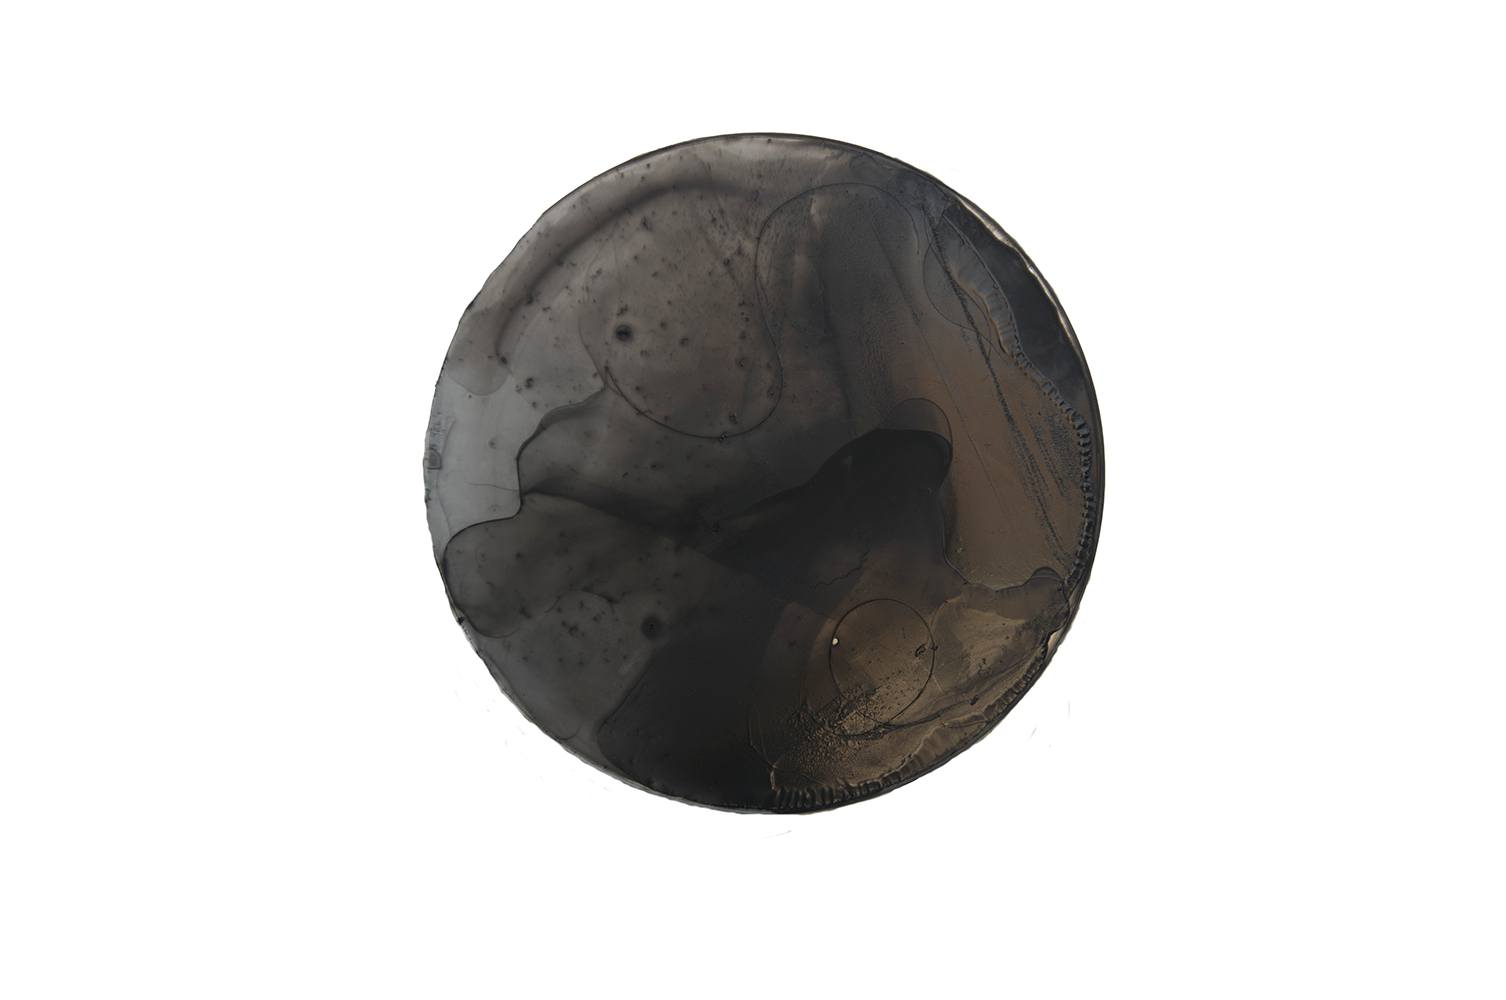 Flattened Sphere #7